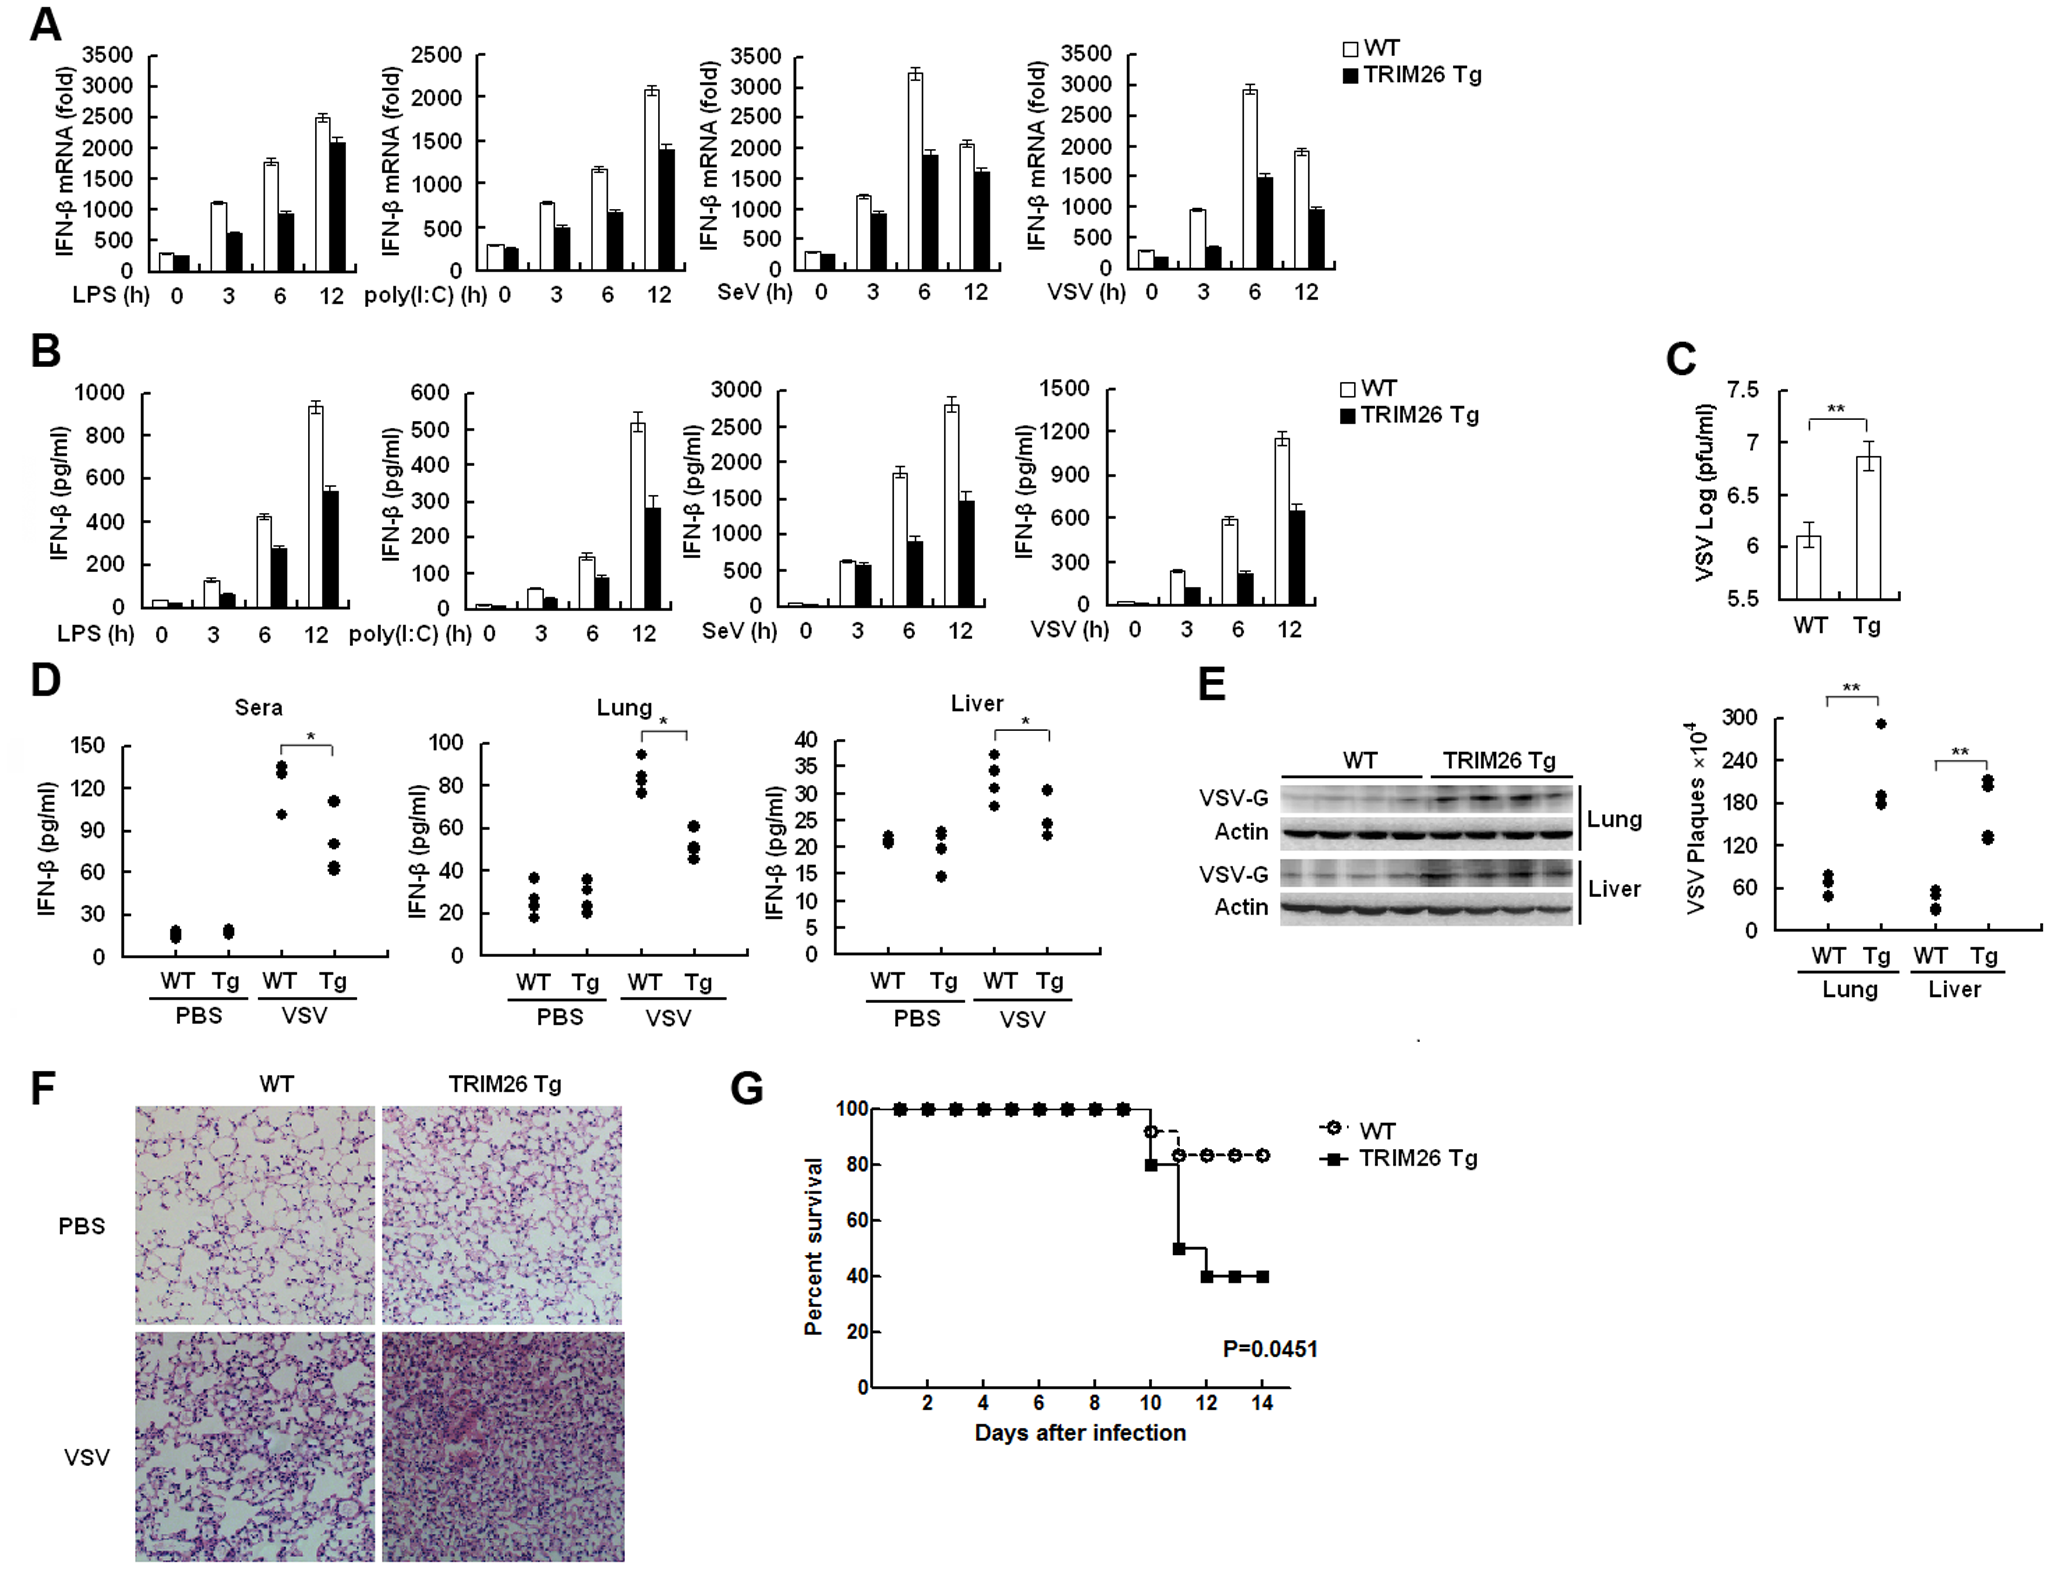 Impaired IFN-β signaling and antiviral responses in TRIM26 transgenic mice.